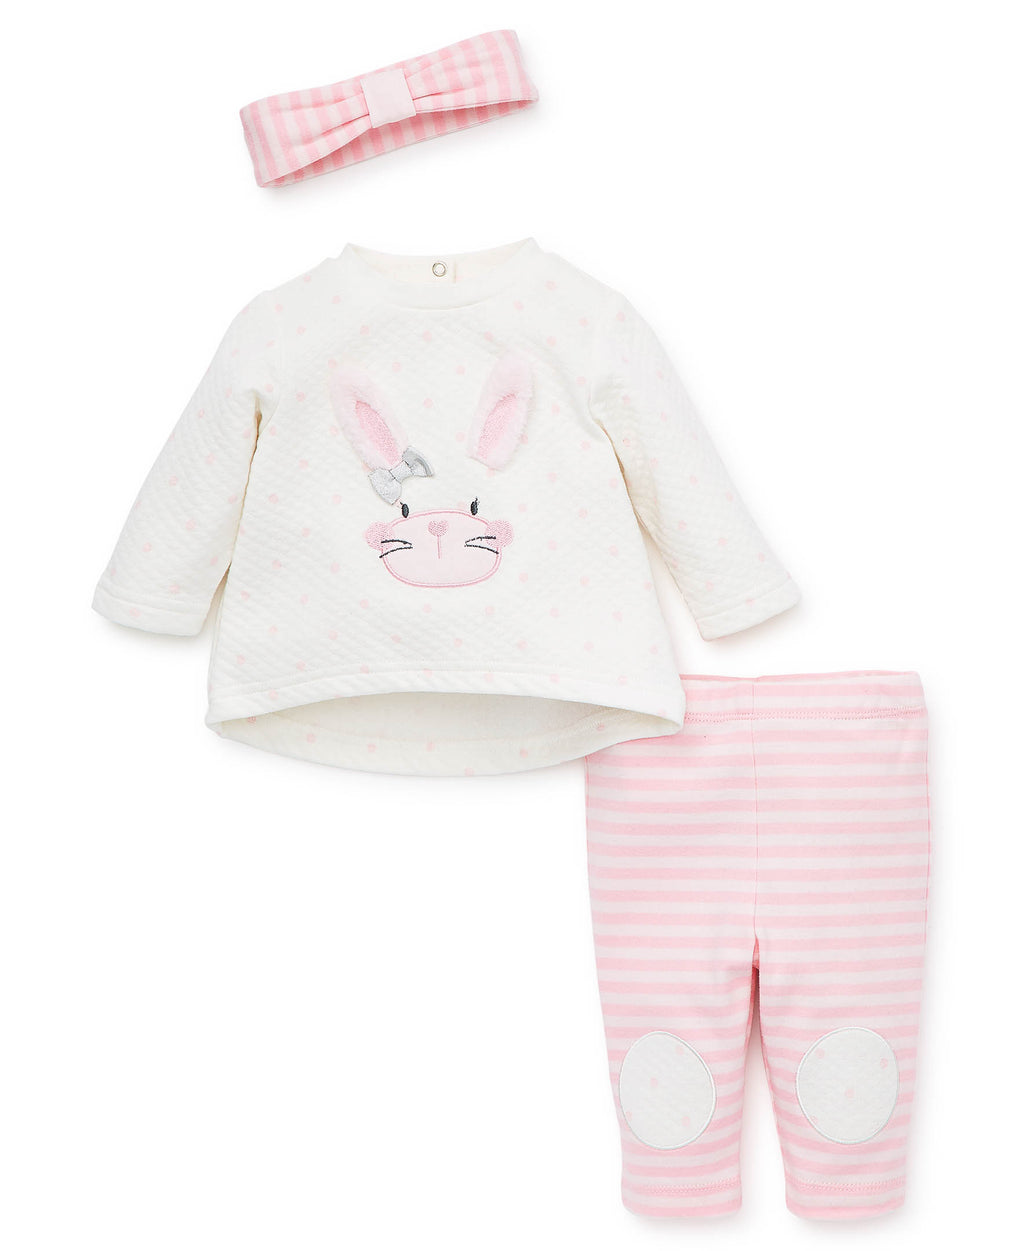 Bunny Sweatshirt and Pants